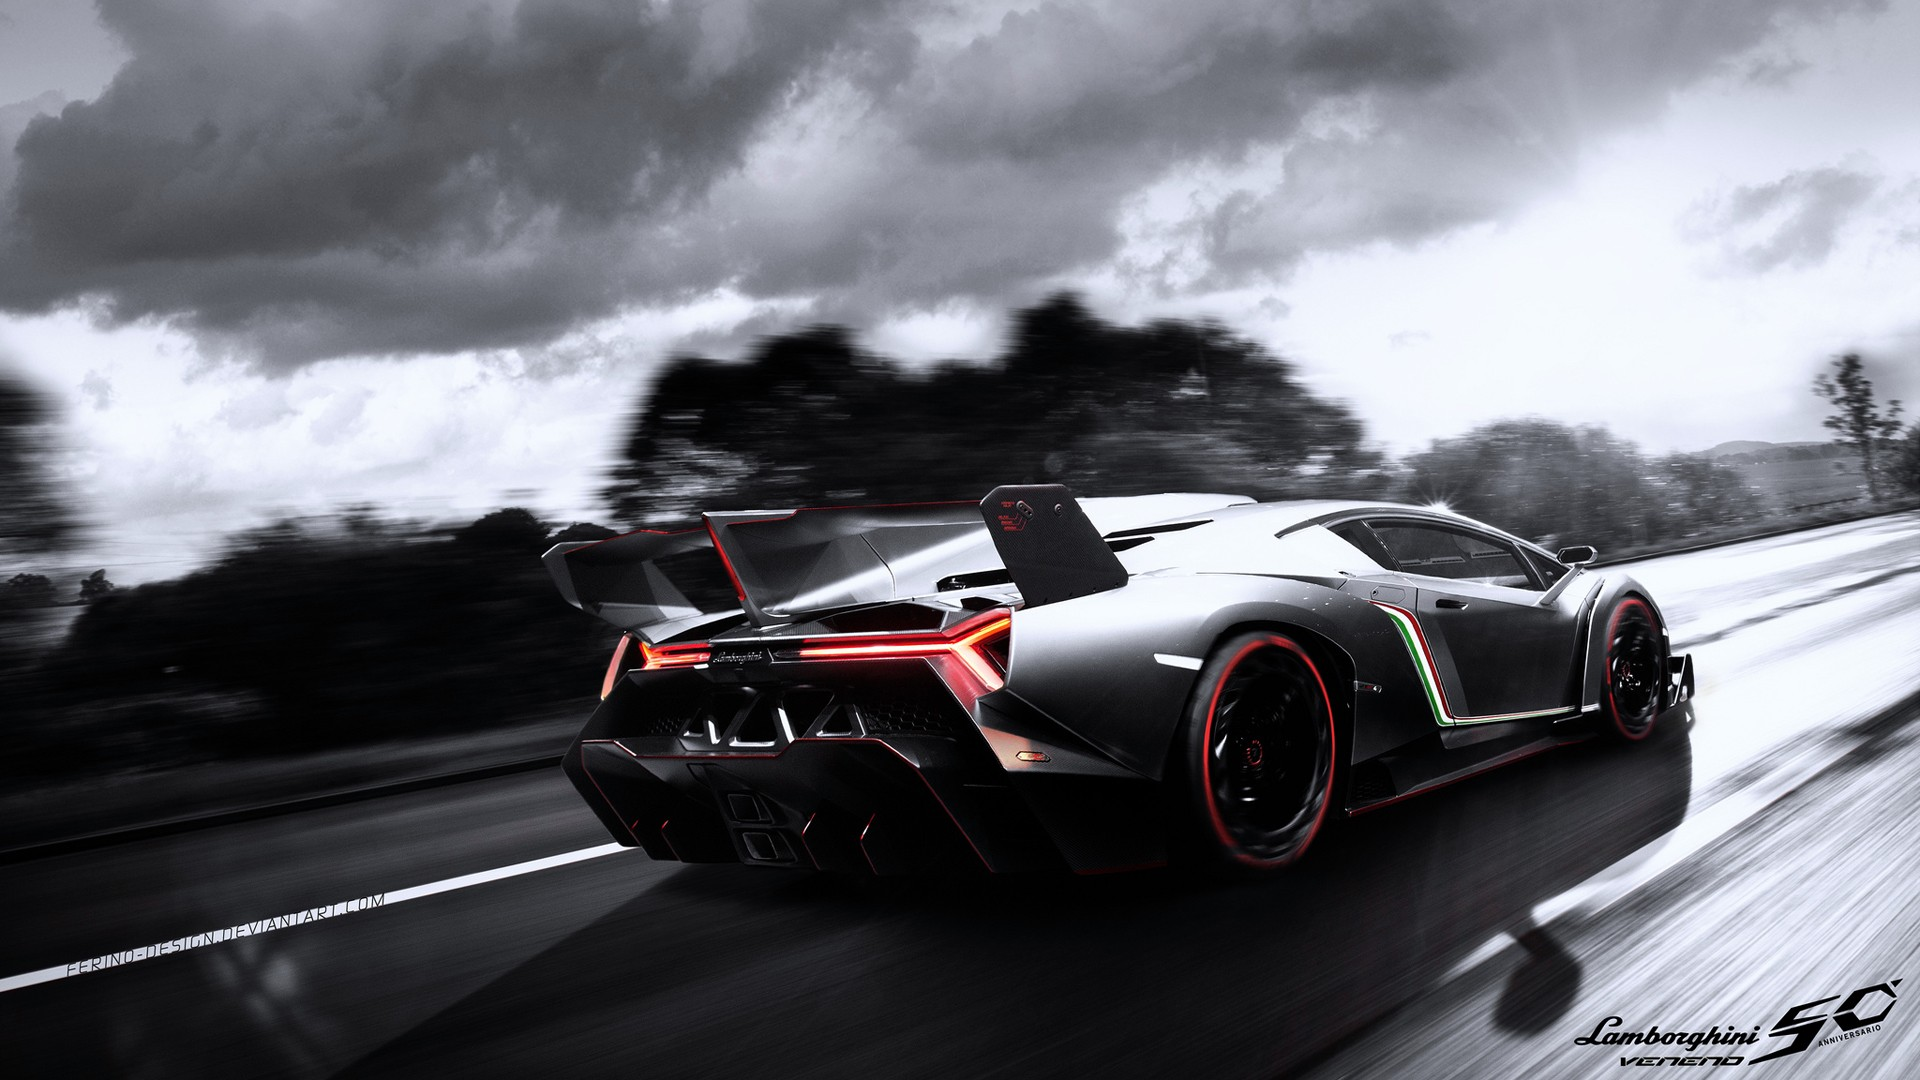 Lamborghini Veneno Wallpaper Desktop